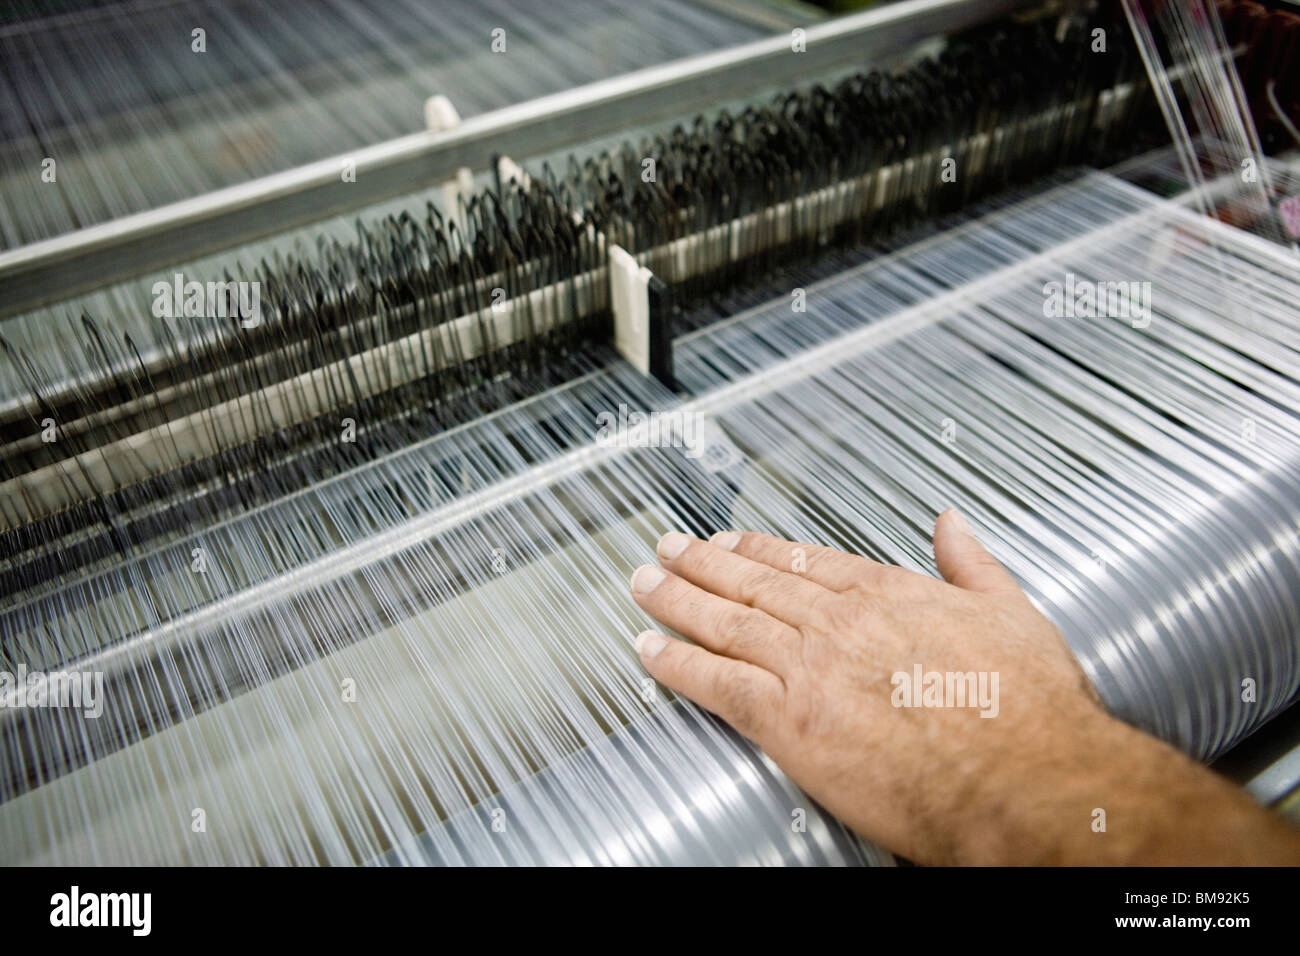 Weaving mill, machinist manually checking thread tension on a loom - Stock Image